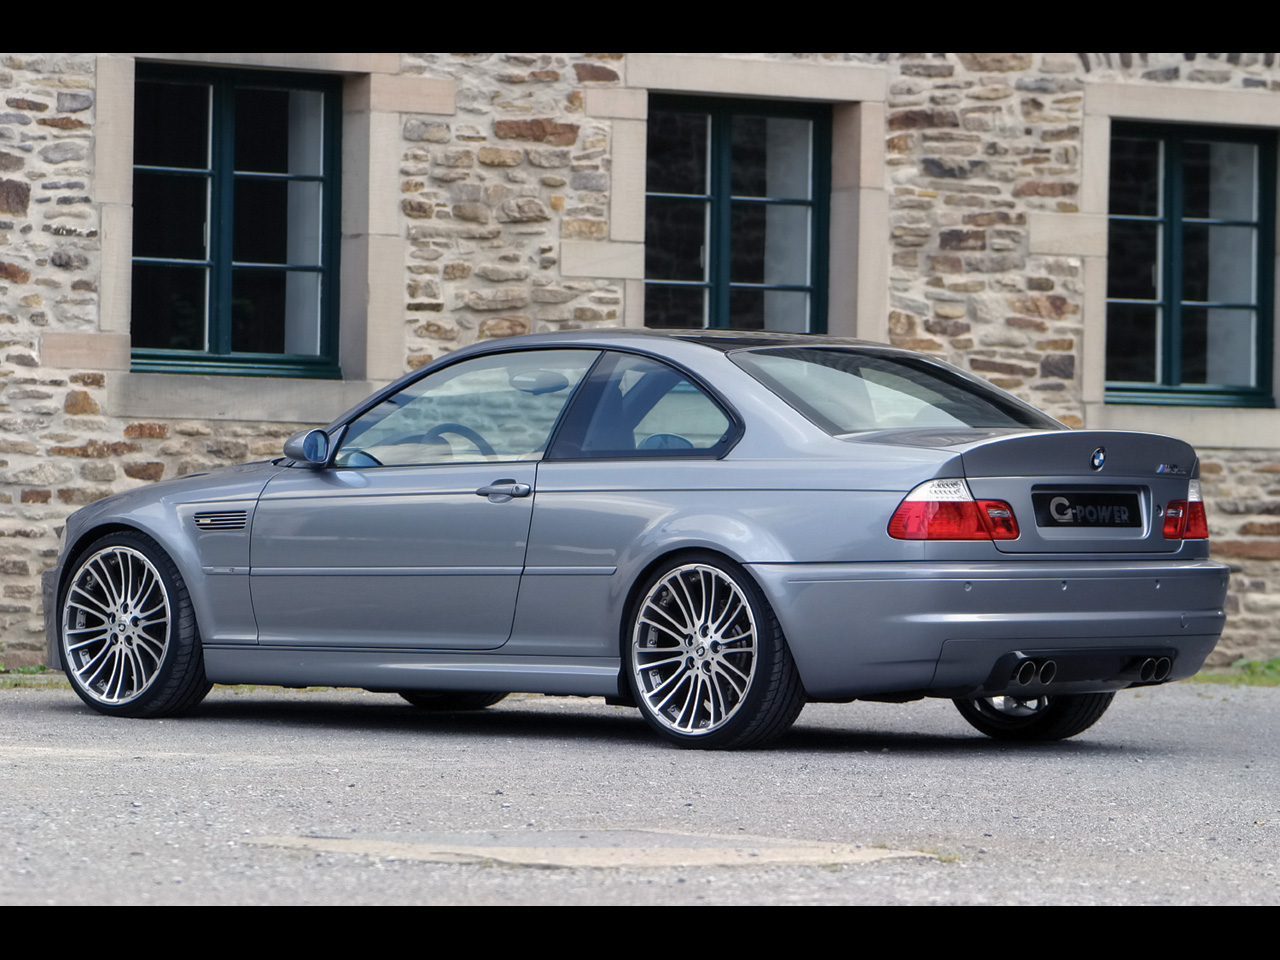 2007 G-Power BMW M3 CSL - Rear And Side - 1280x960 - Wallpaper